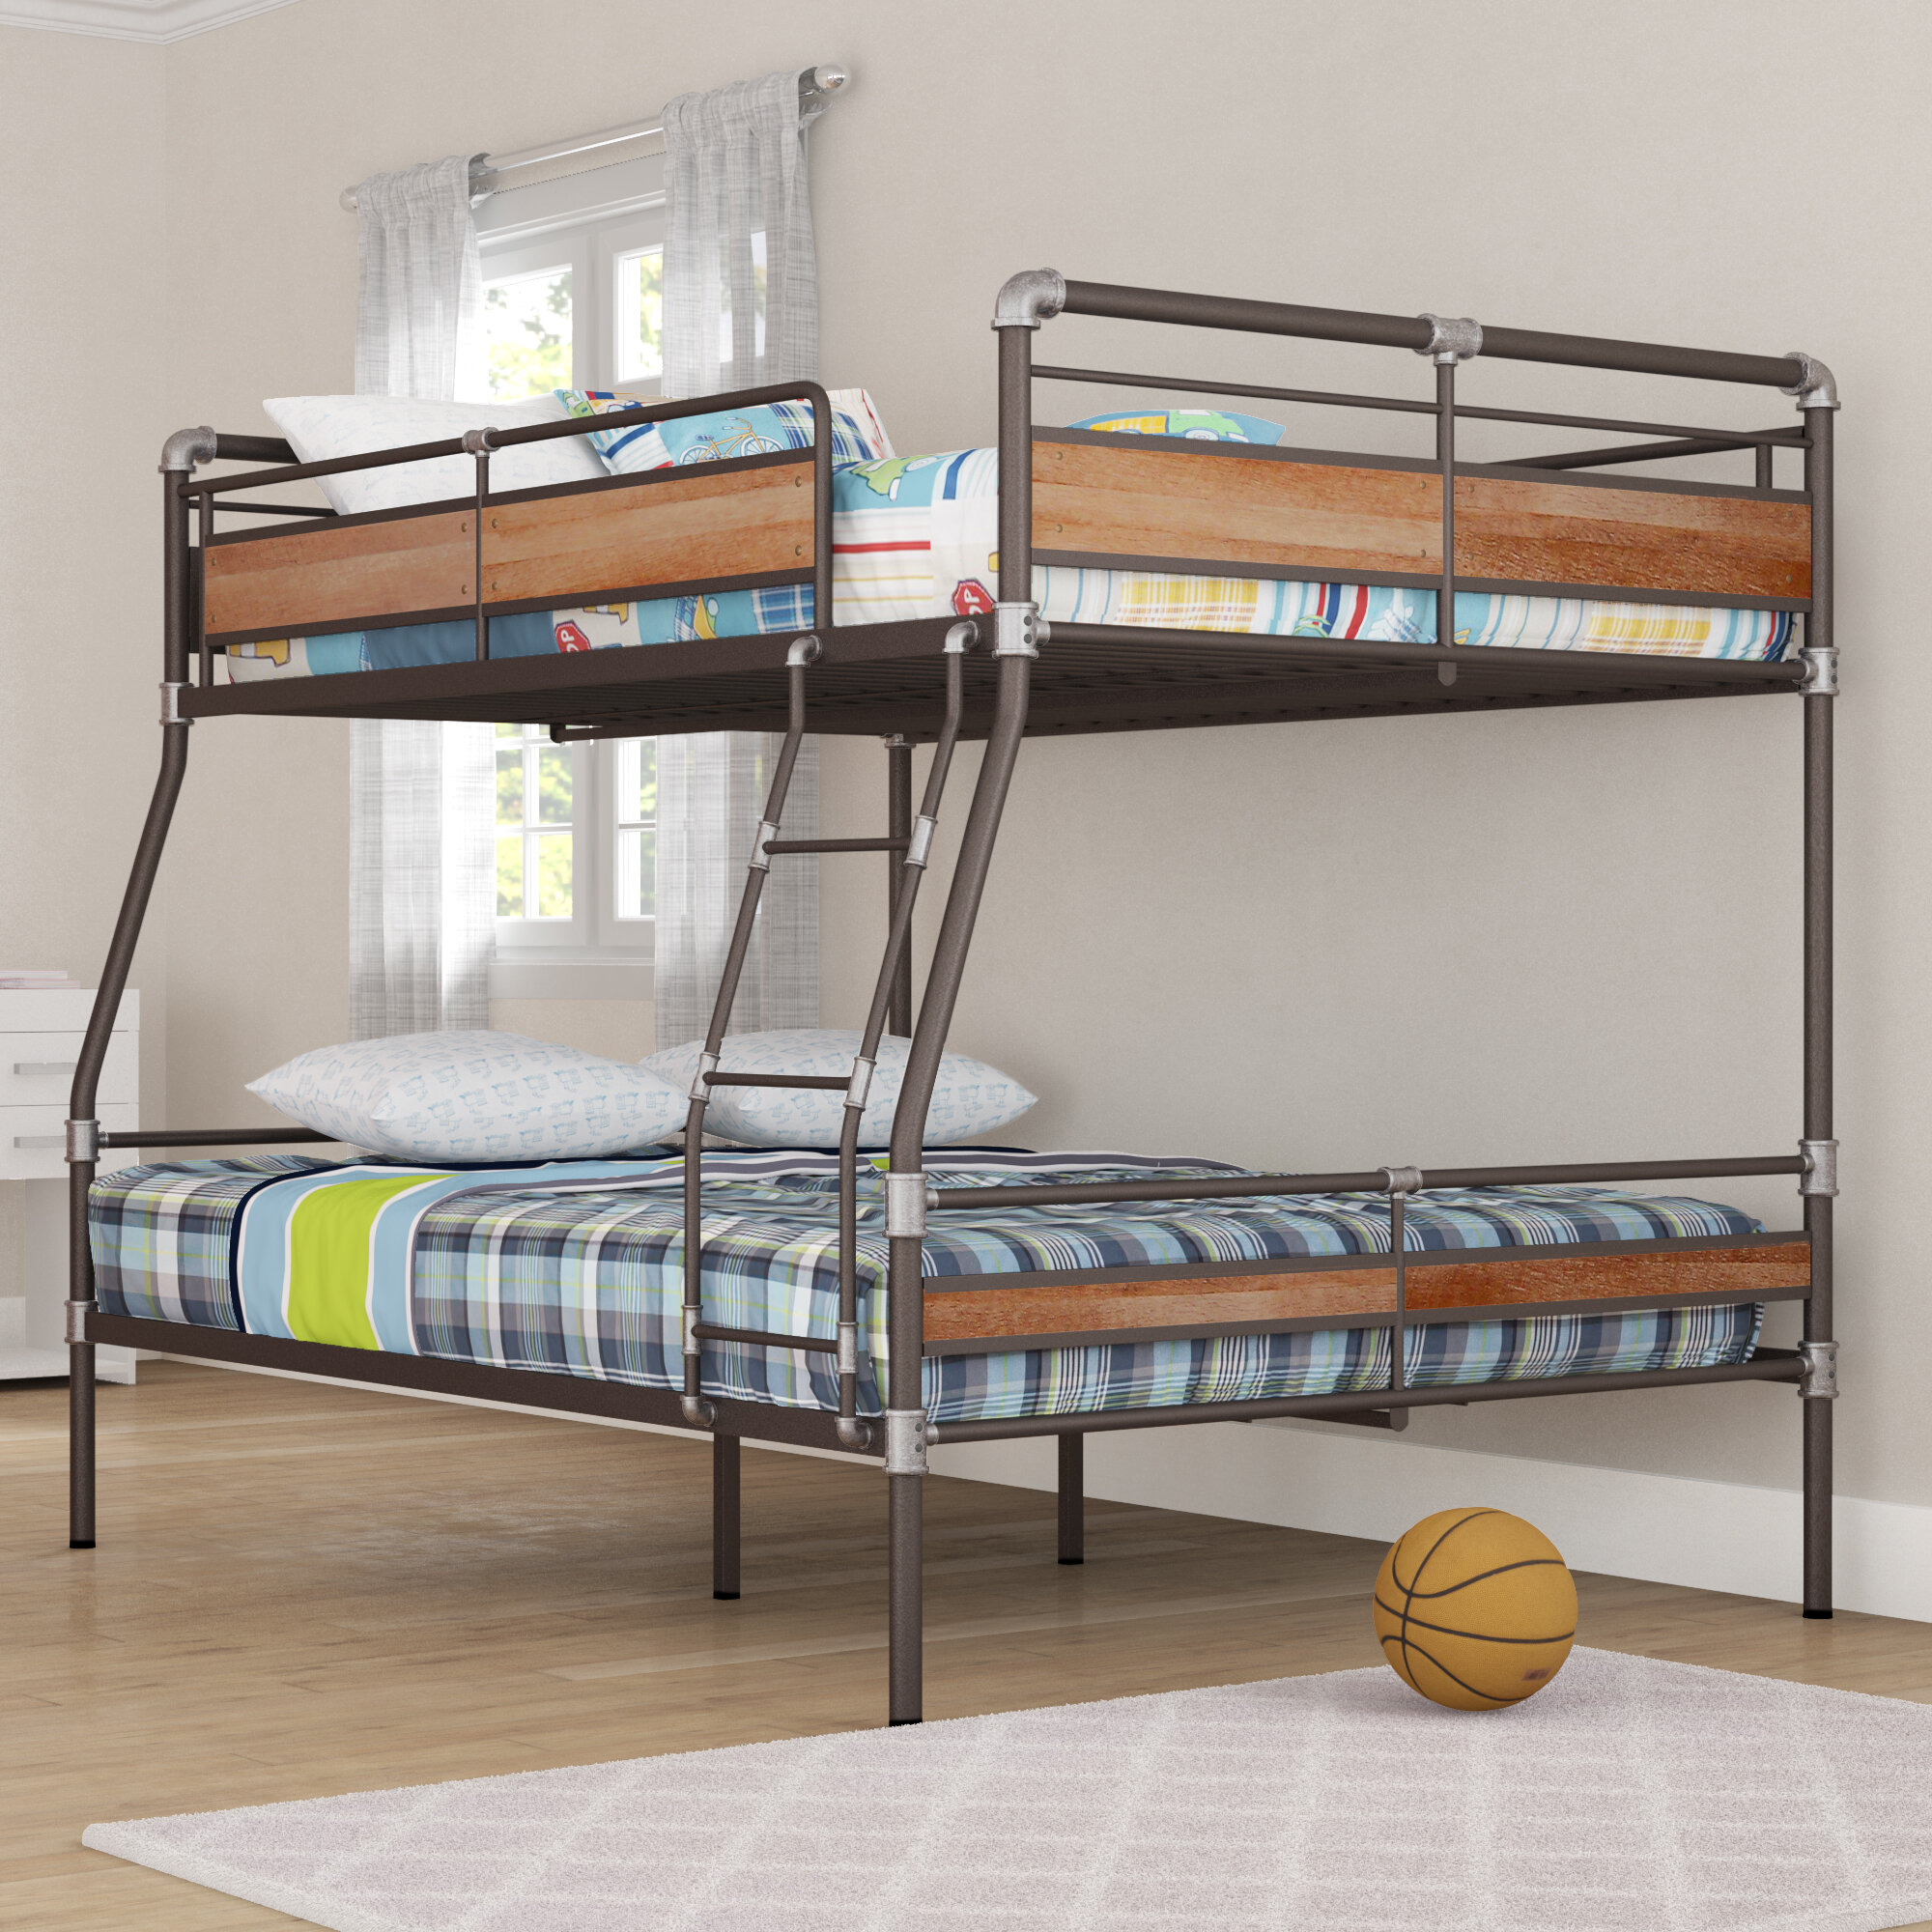 Picture of: Bunk Queen Kids Beds You Ll Love In 2020 Wayfair